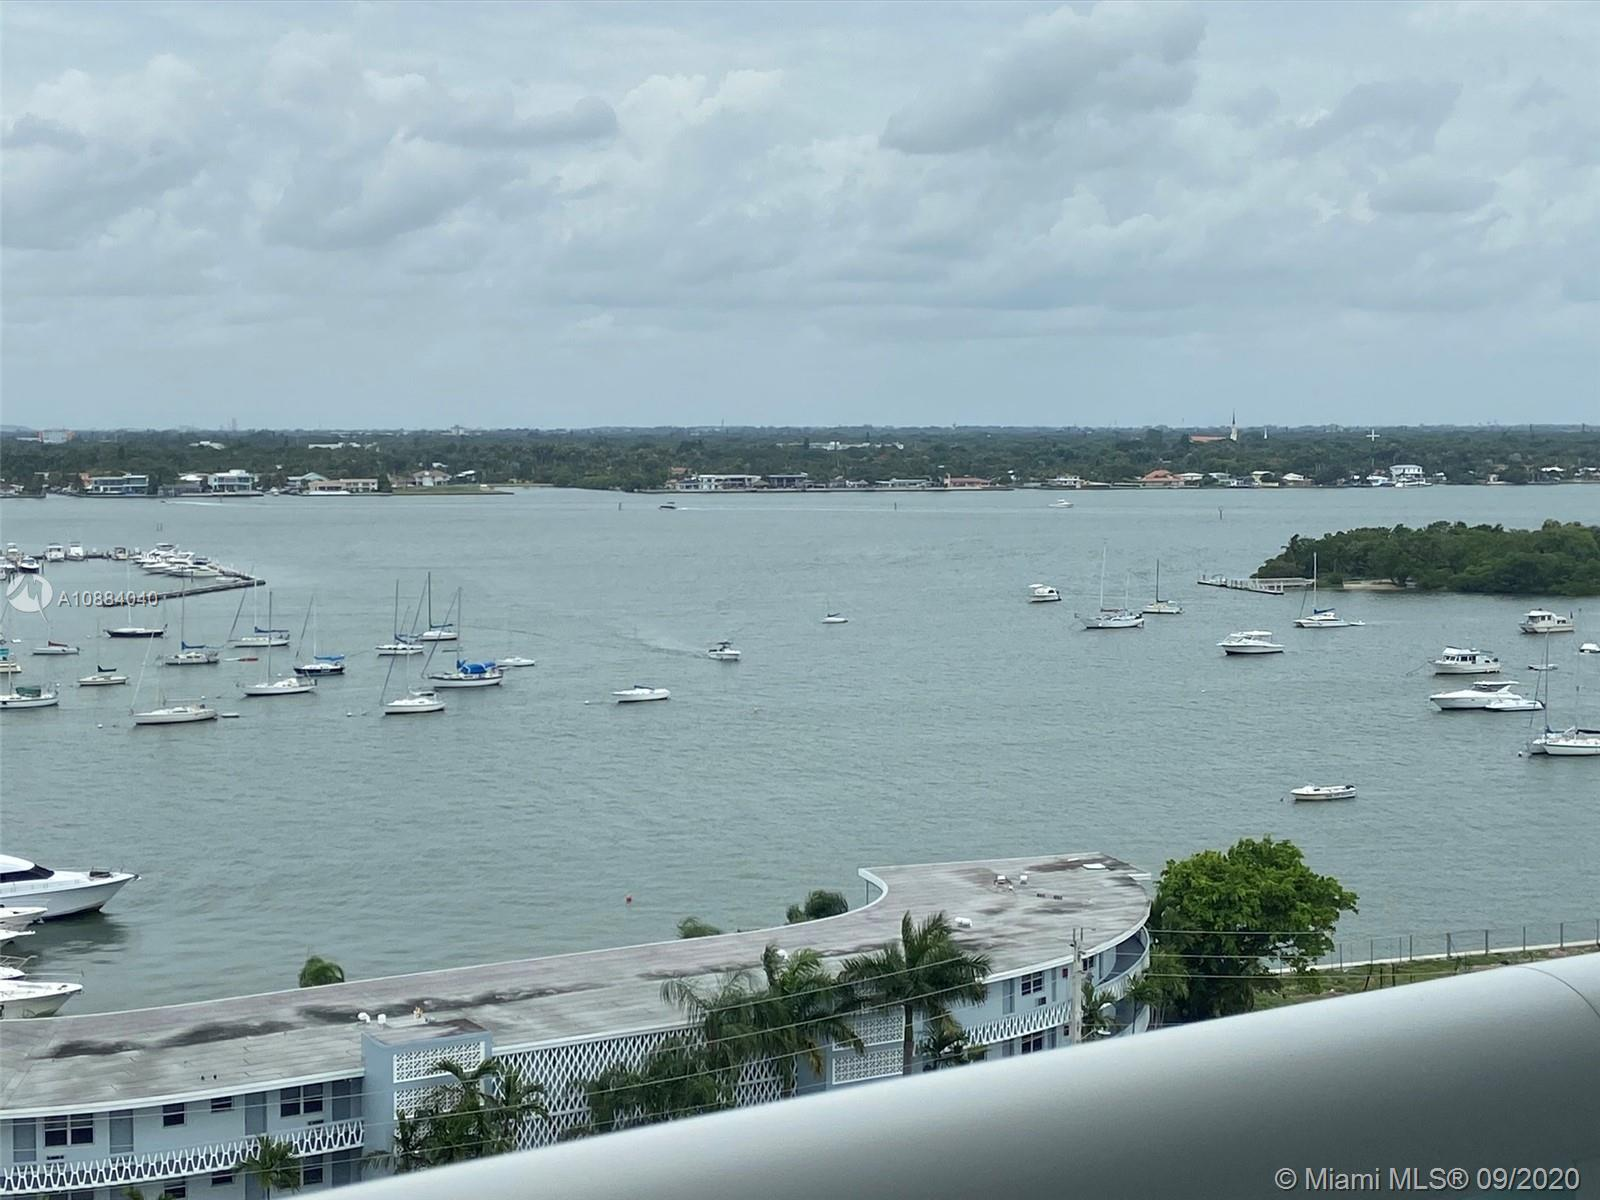 Beautiful condo with views of Biscayne Bay. Split floor plan with lots of closet space. Open kitchen with lots of natural light and impact glass. 360 features 2 resort-style pool decks, gym, sauna and concierge services through the valet staff .